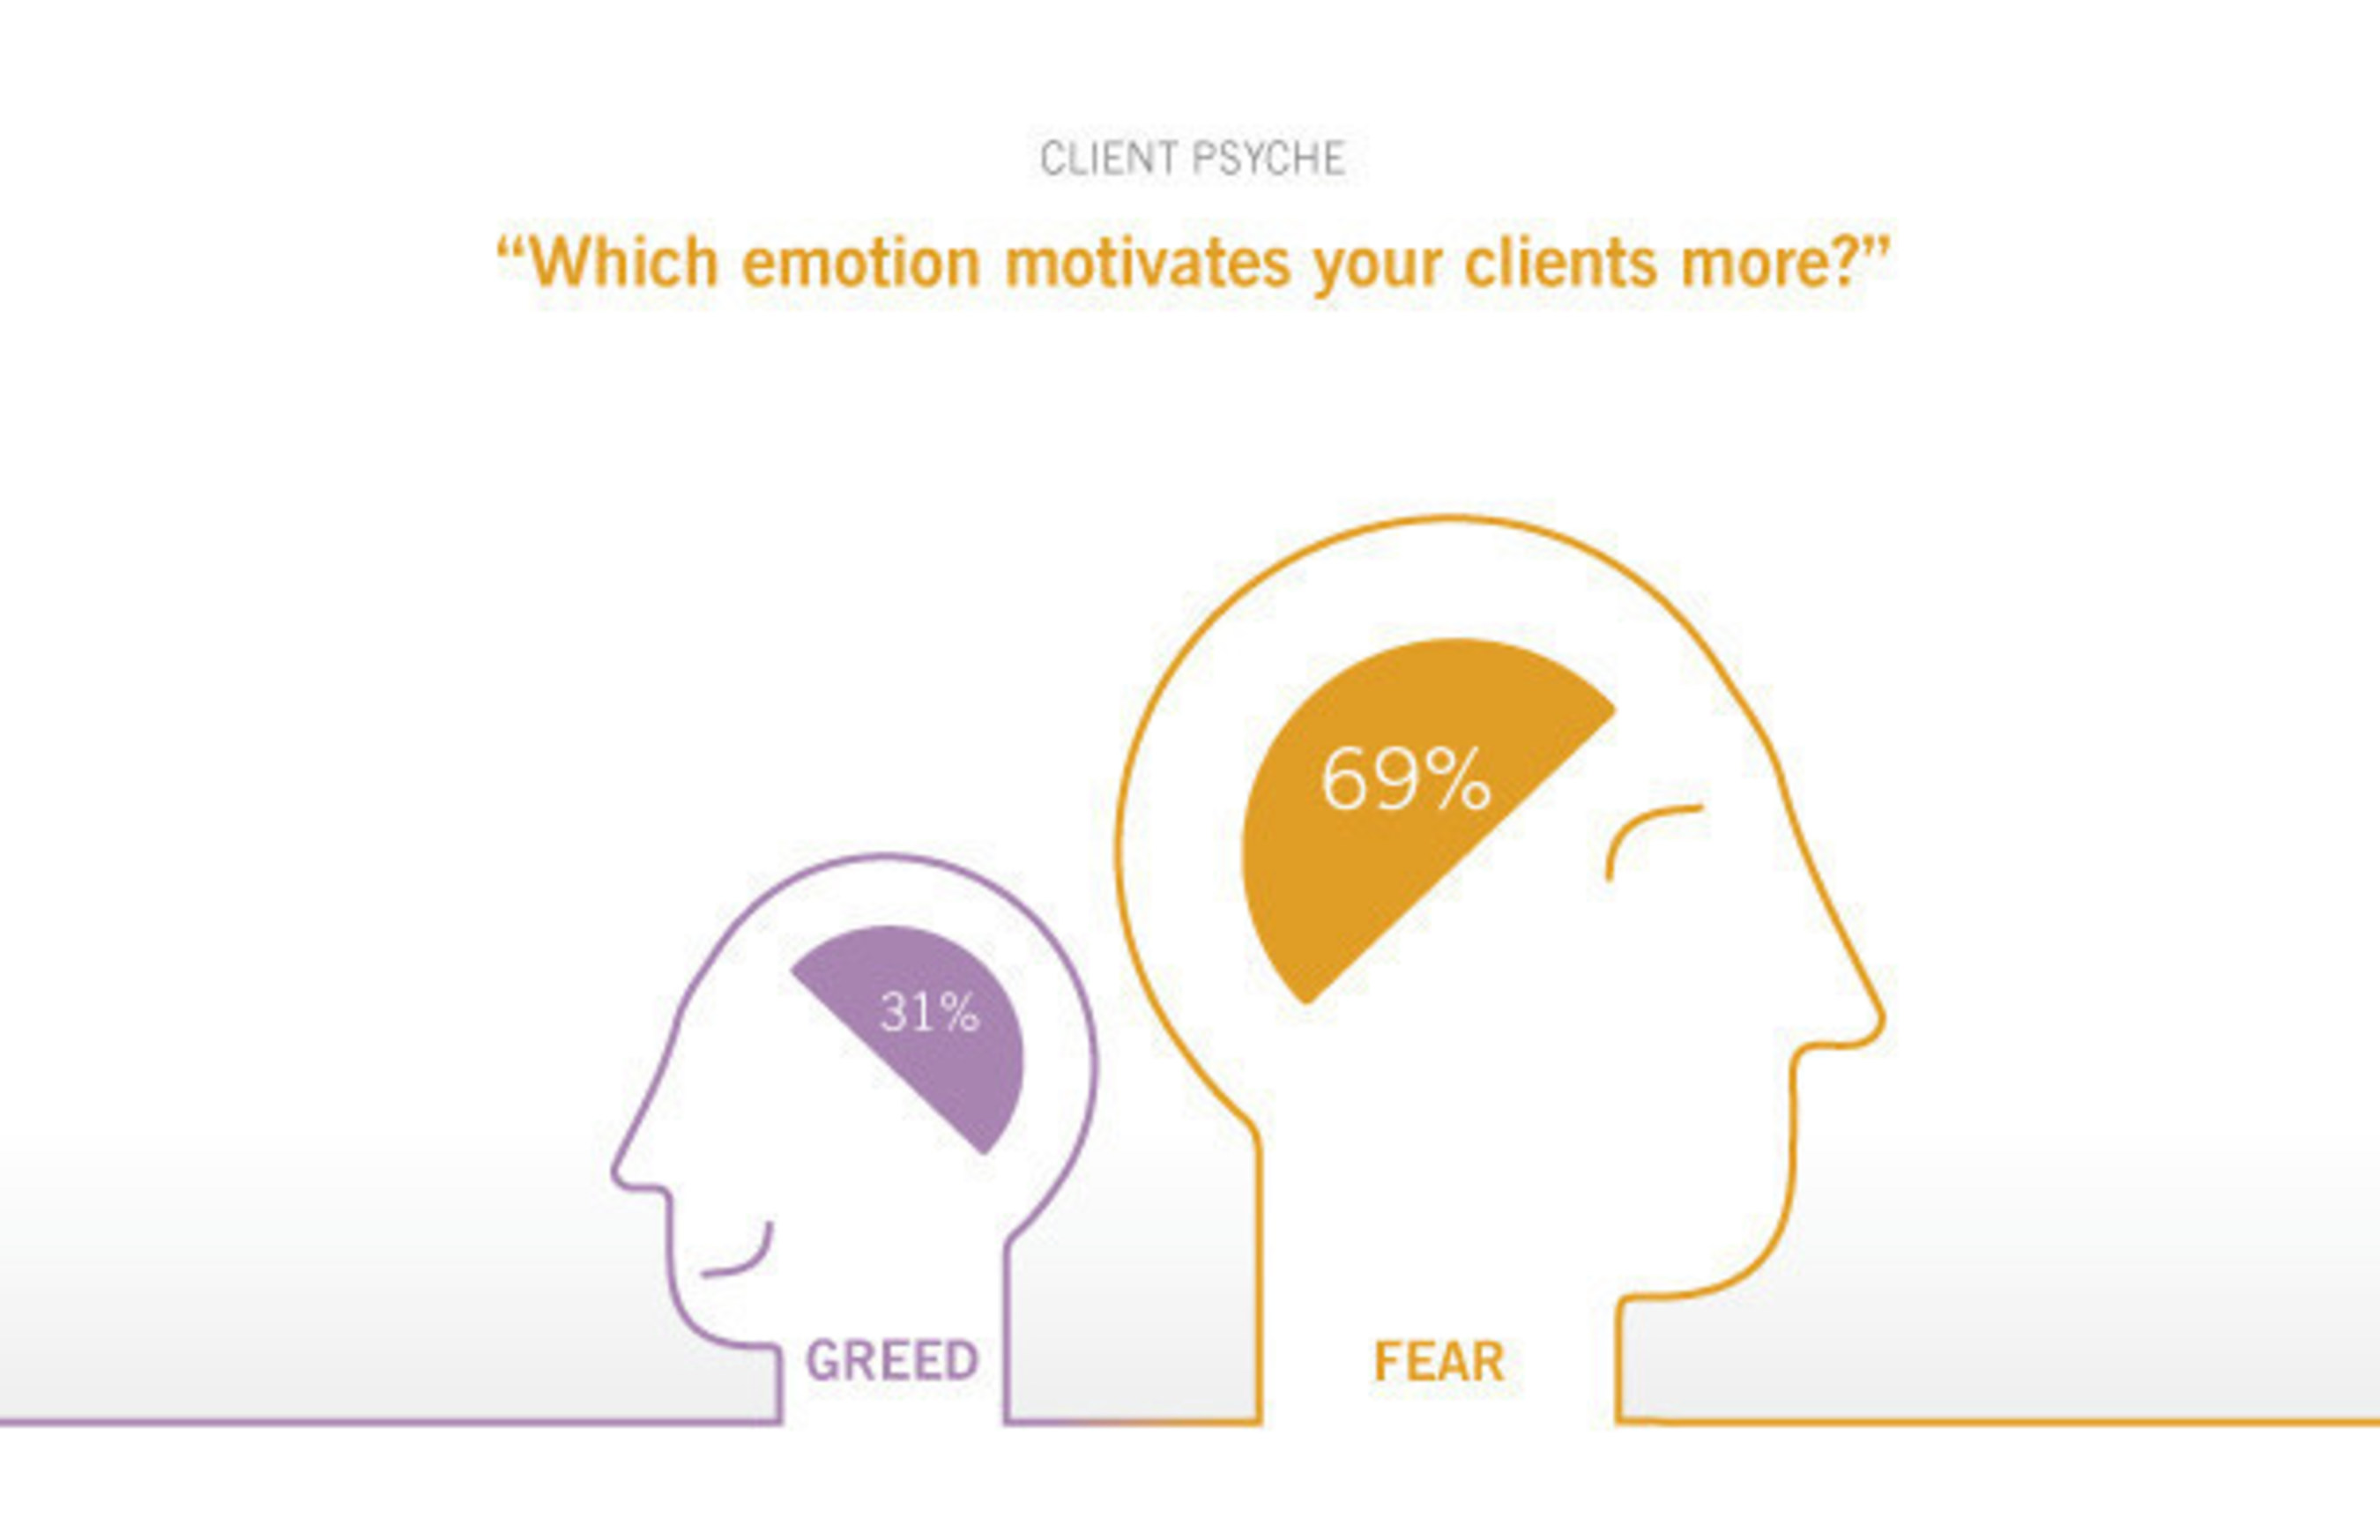 The majority of financial advisors report clients are motivated by fear.